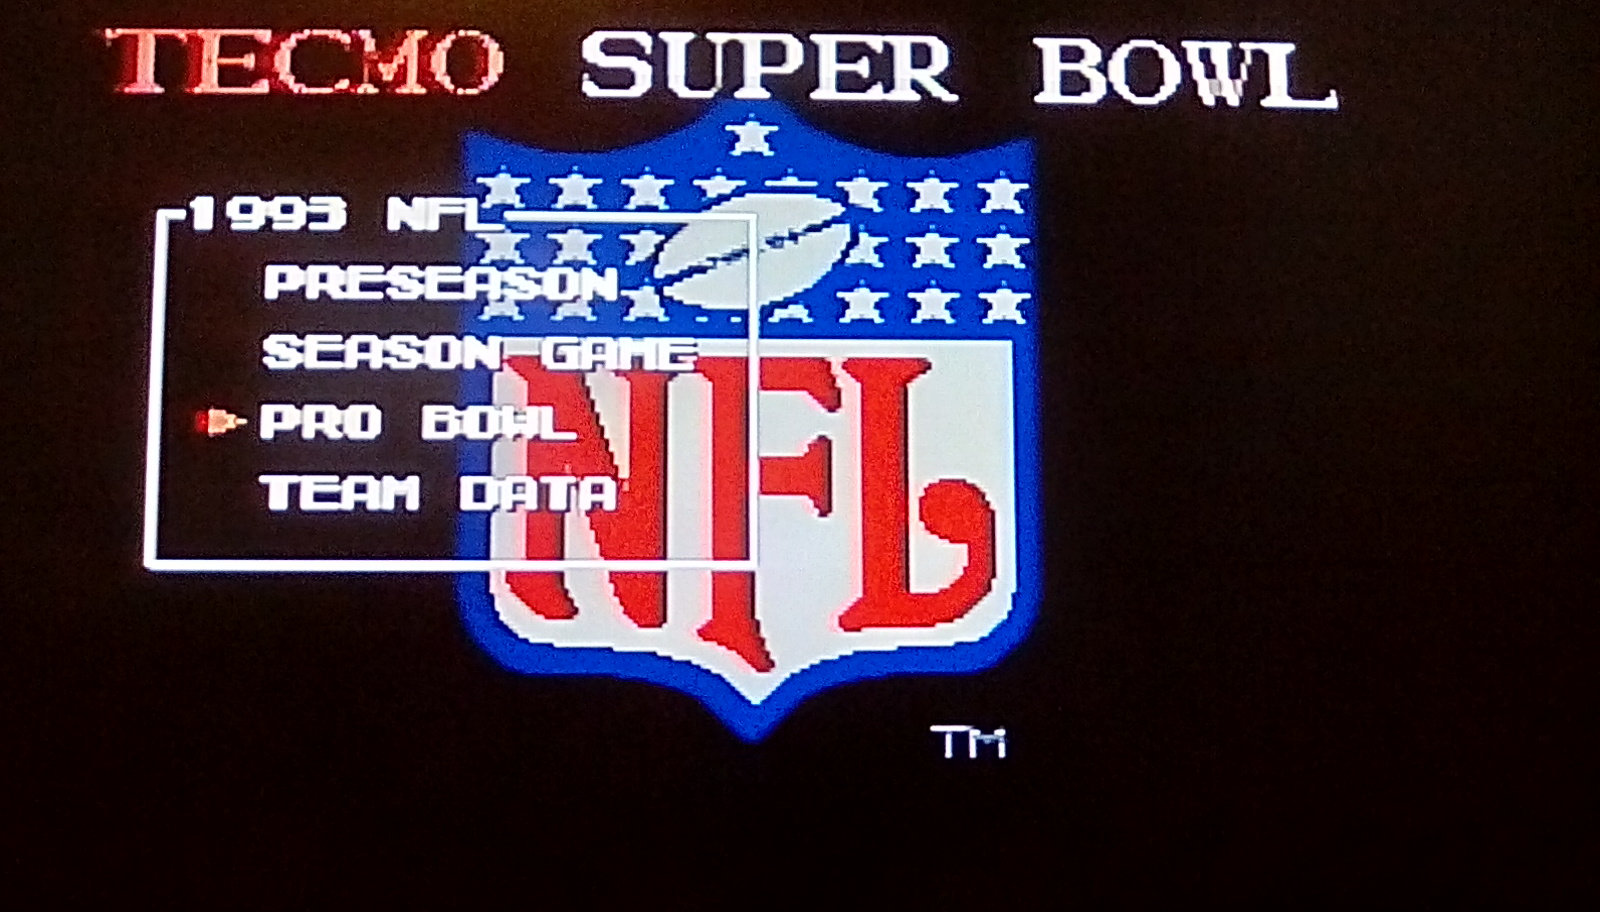 Tecmo Super Bowl [Most Receptions] [Pro Bowl] 15 points